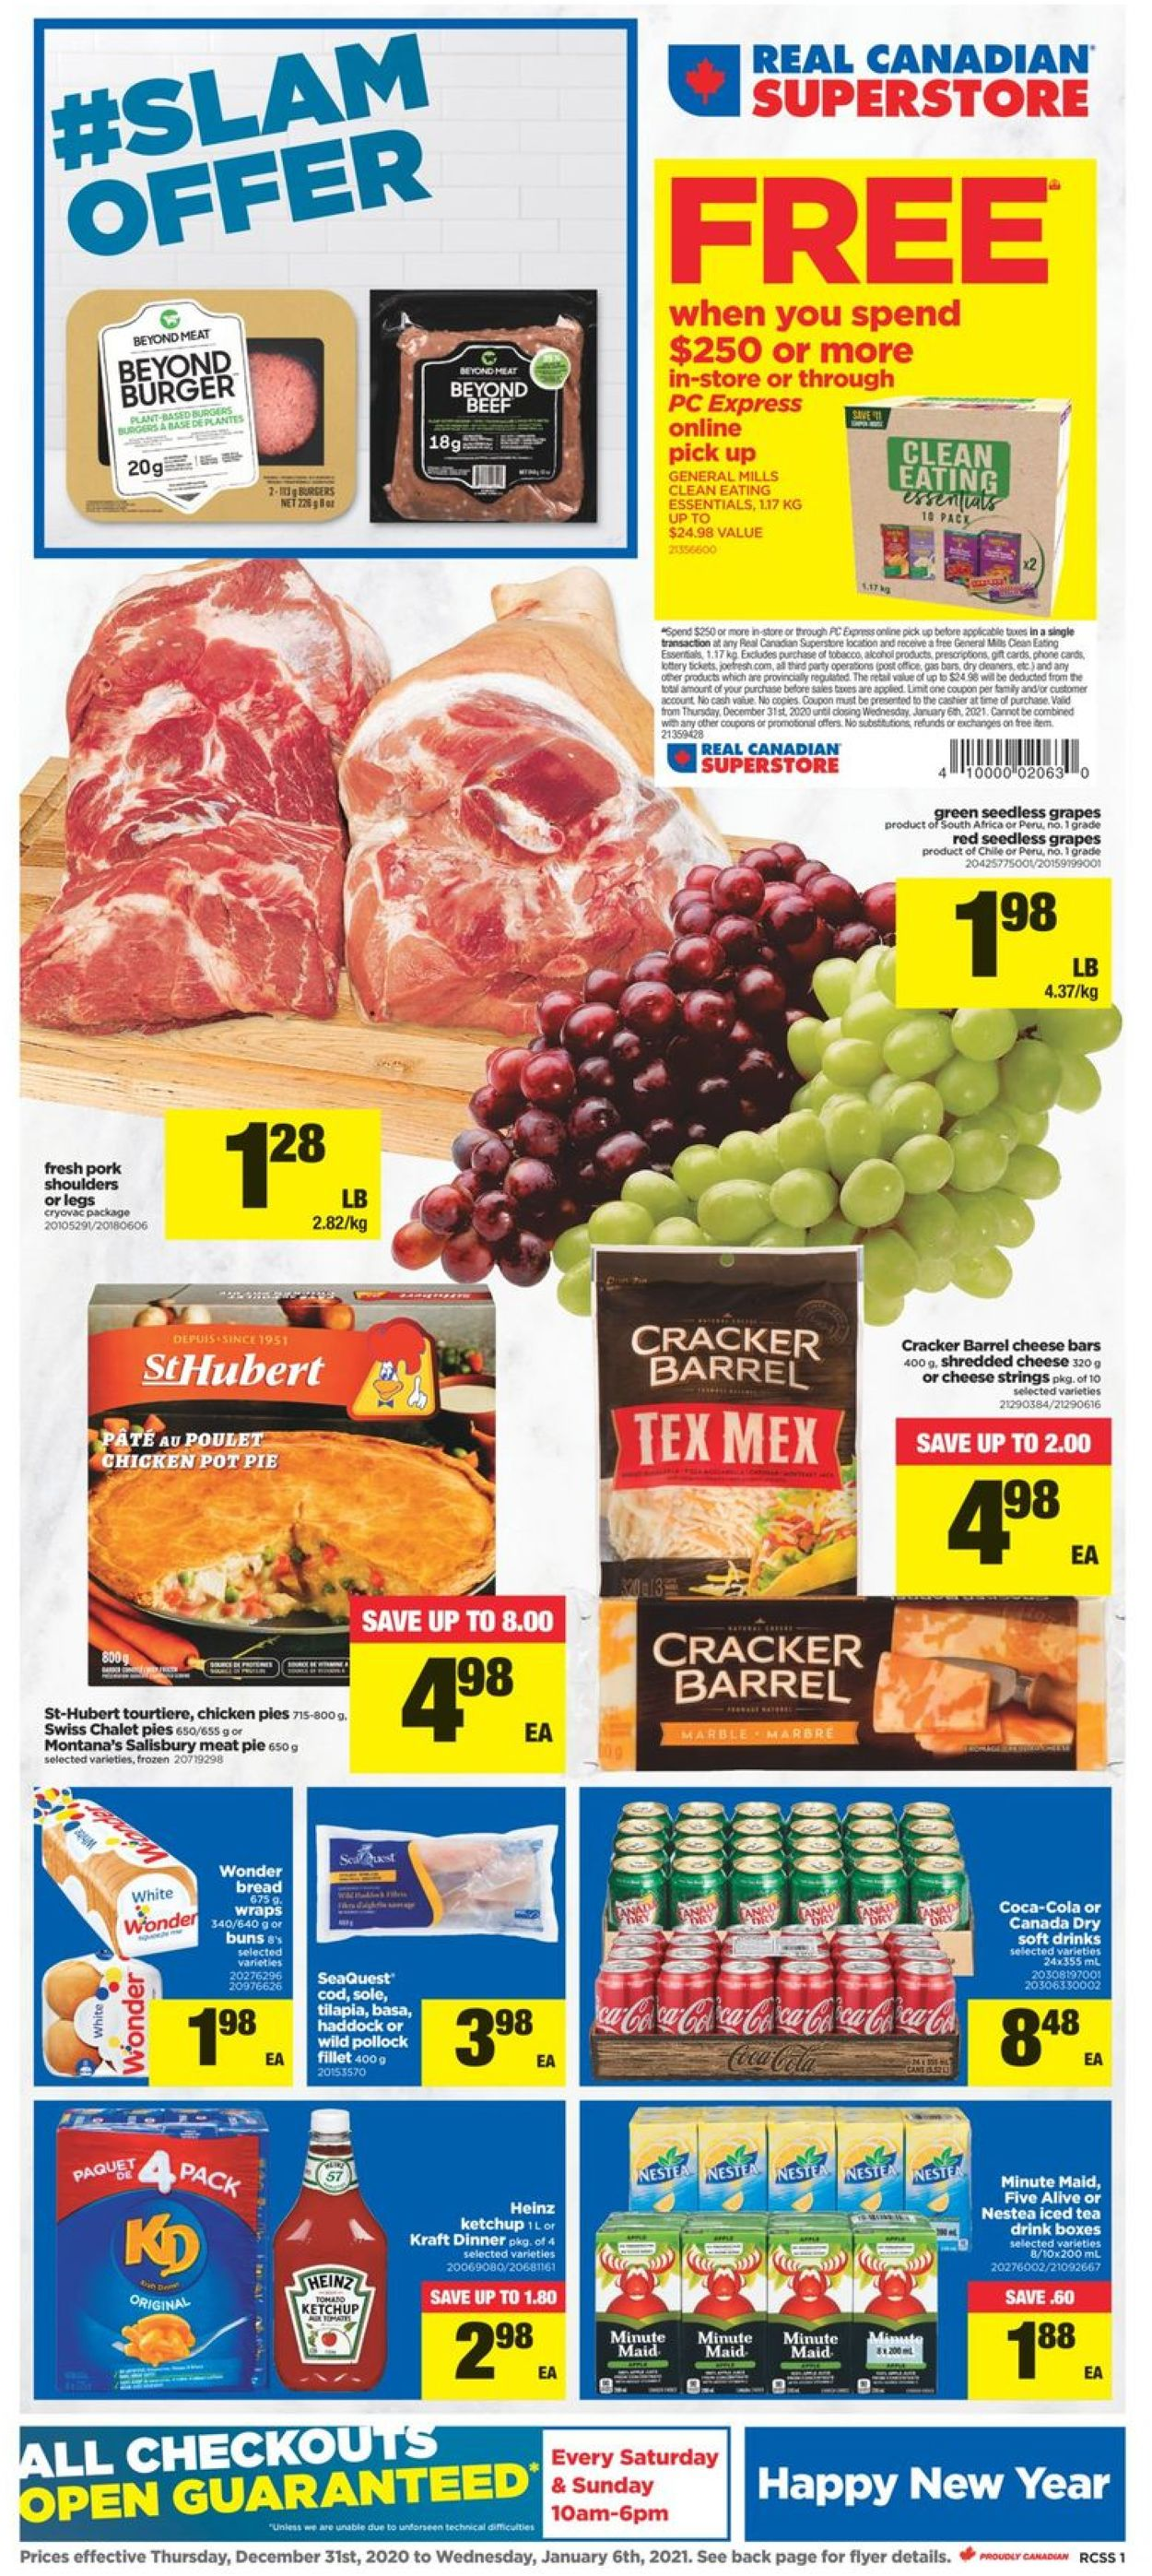 Real Canadian Superstore - New Year 2021 Flyer - 12/31-01/06/2021